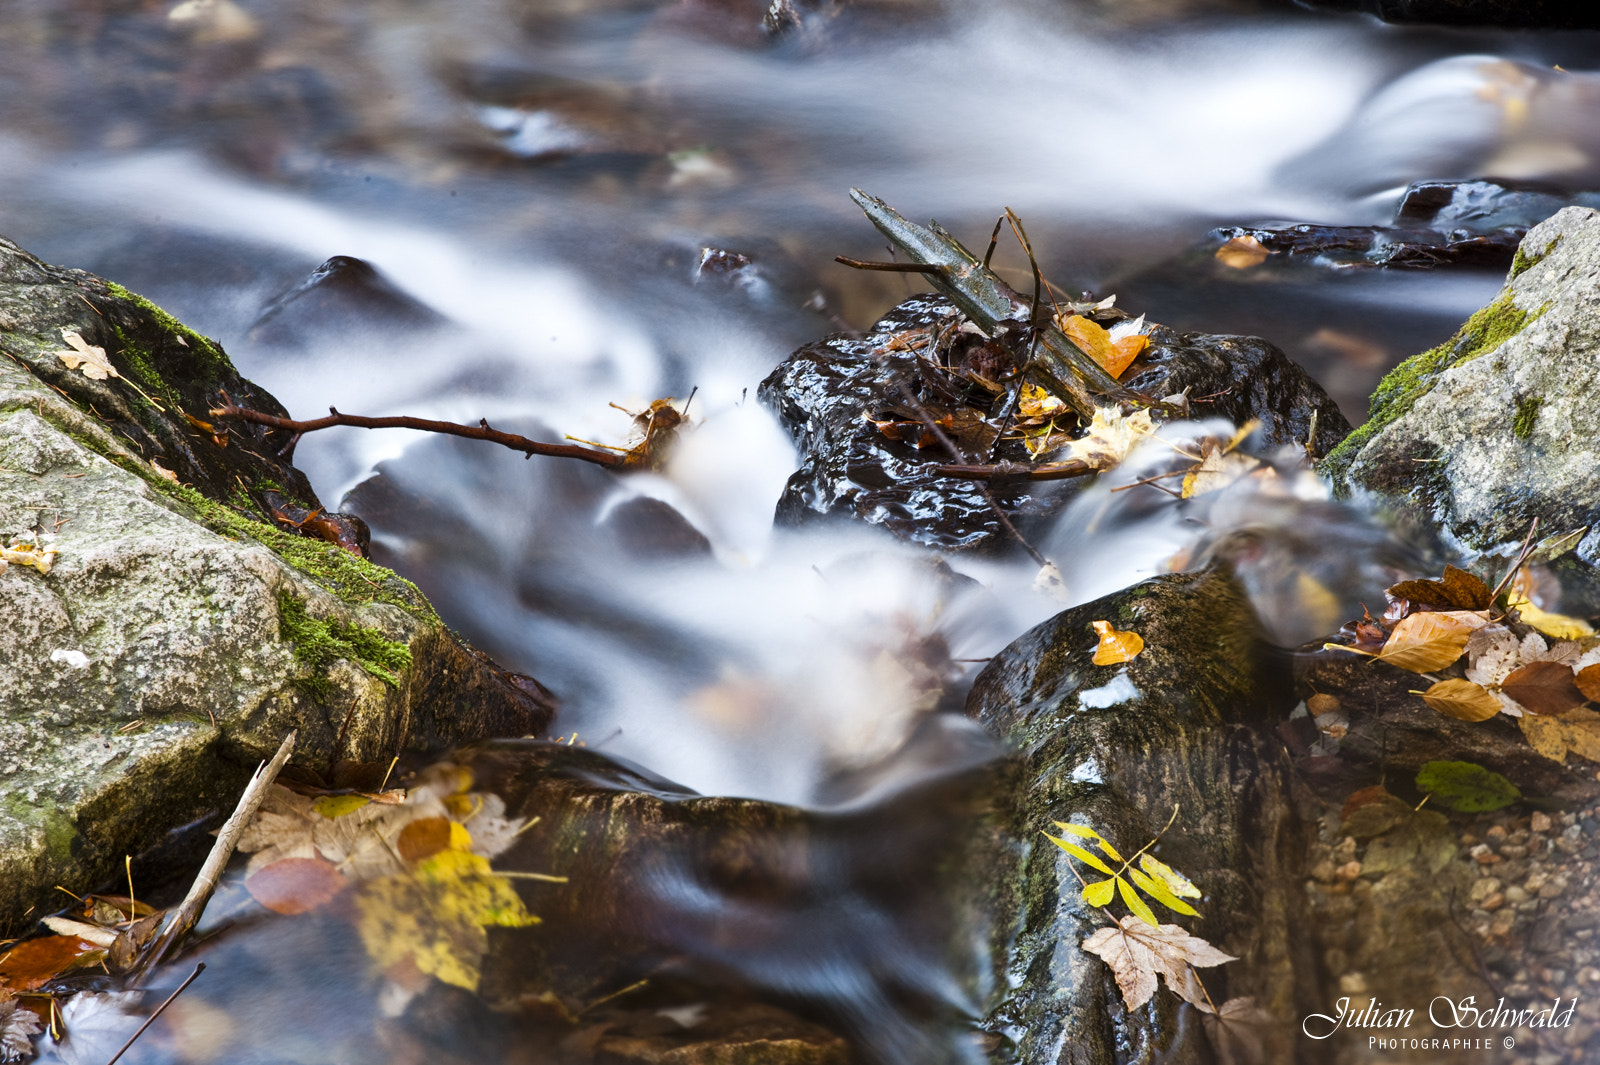 Photograph River in Autumn by Julian Schwald on 500px